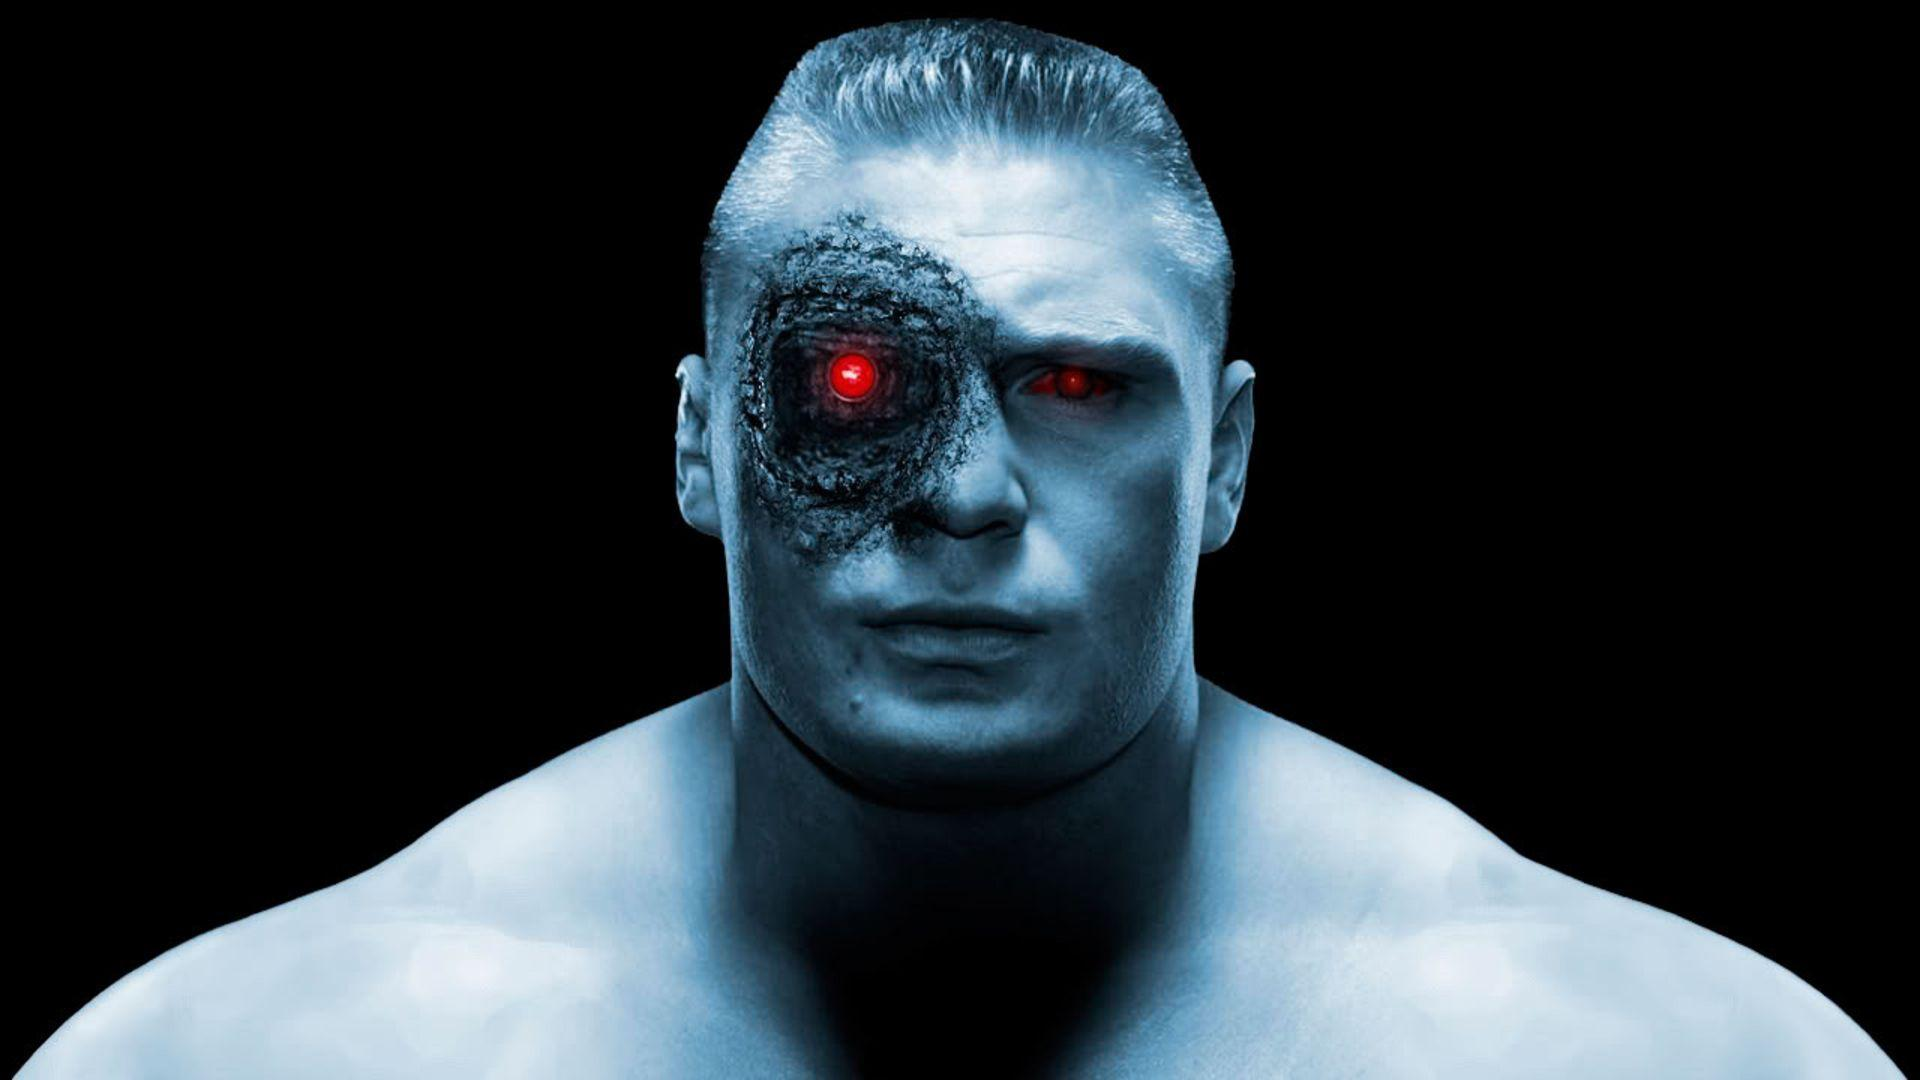 Brock Lesnar Terminator Wallpapers 1920x1080